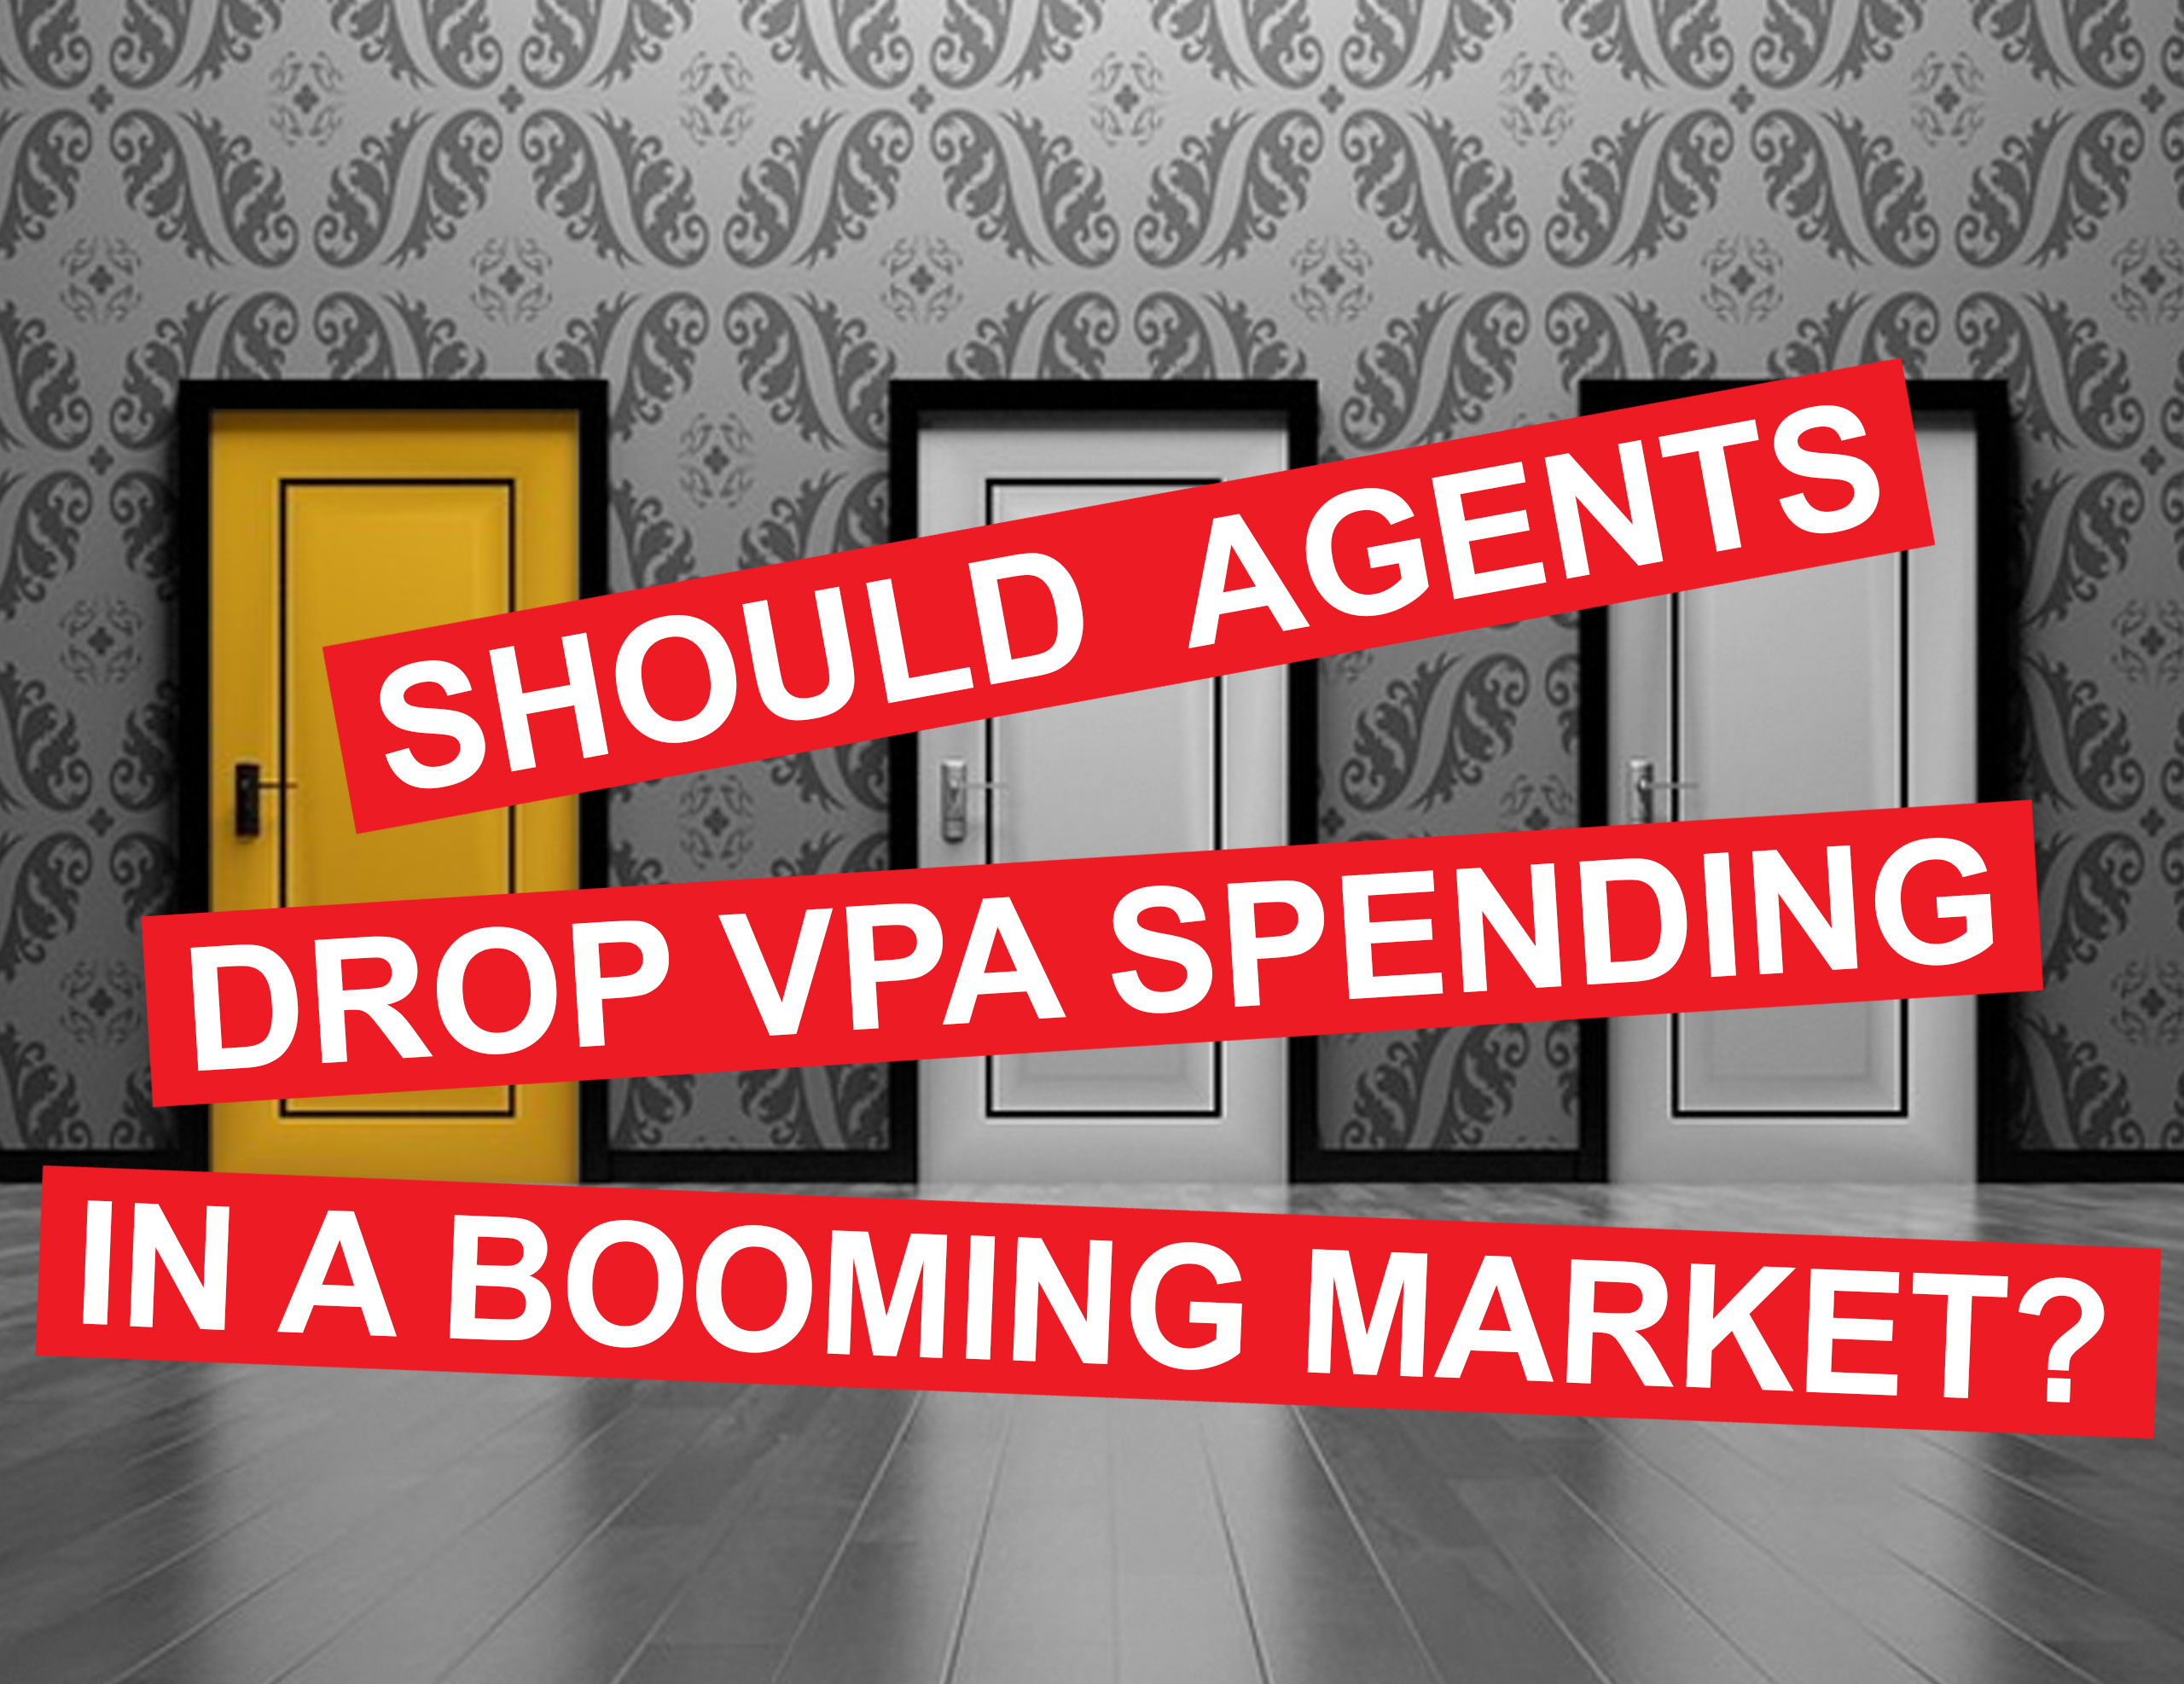 should-real-estate-agents-drop-vpa-spending-in-a-booming-market